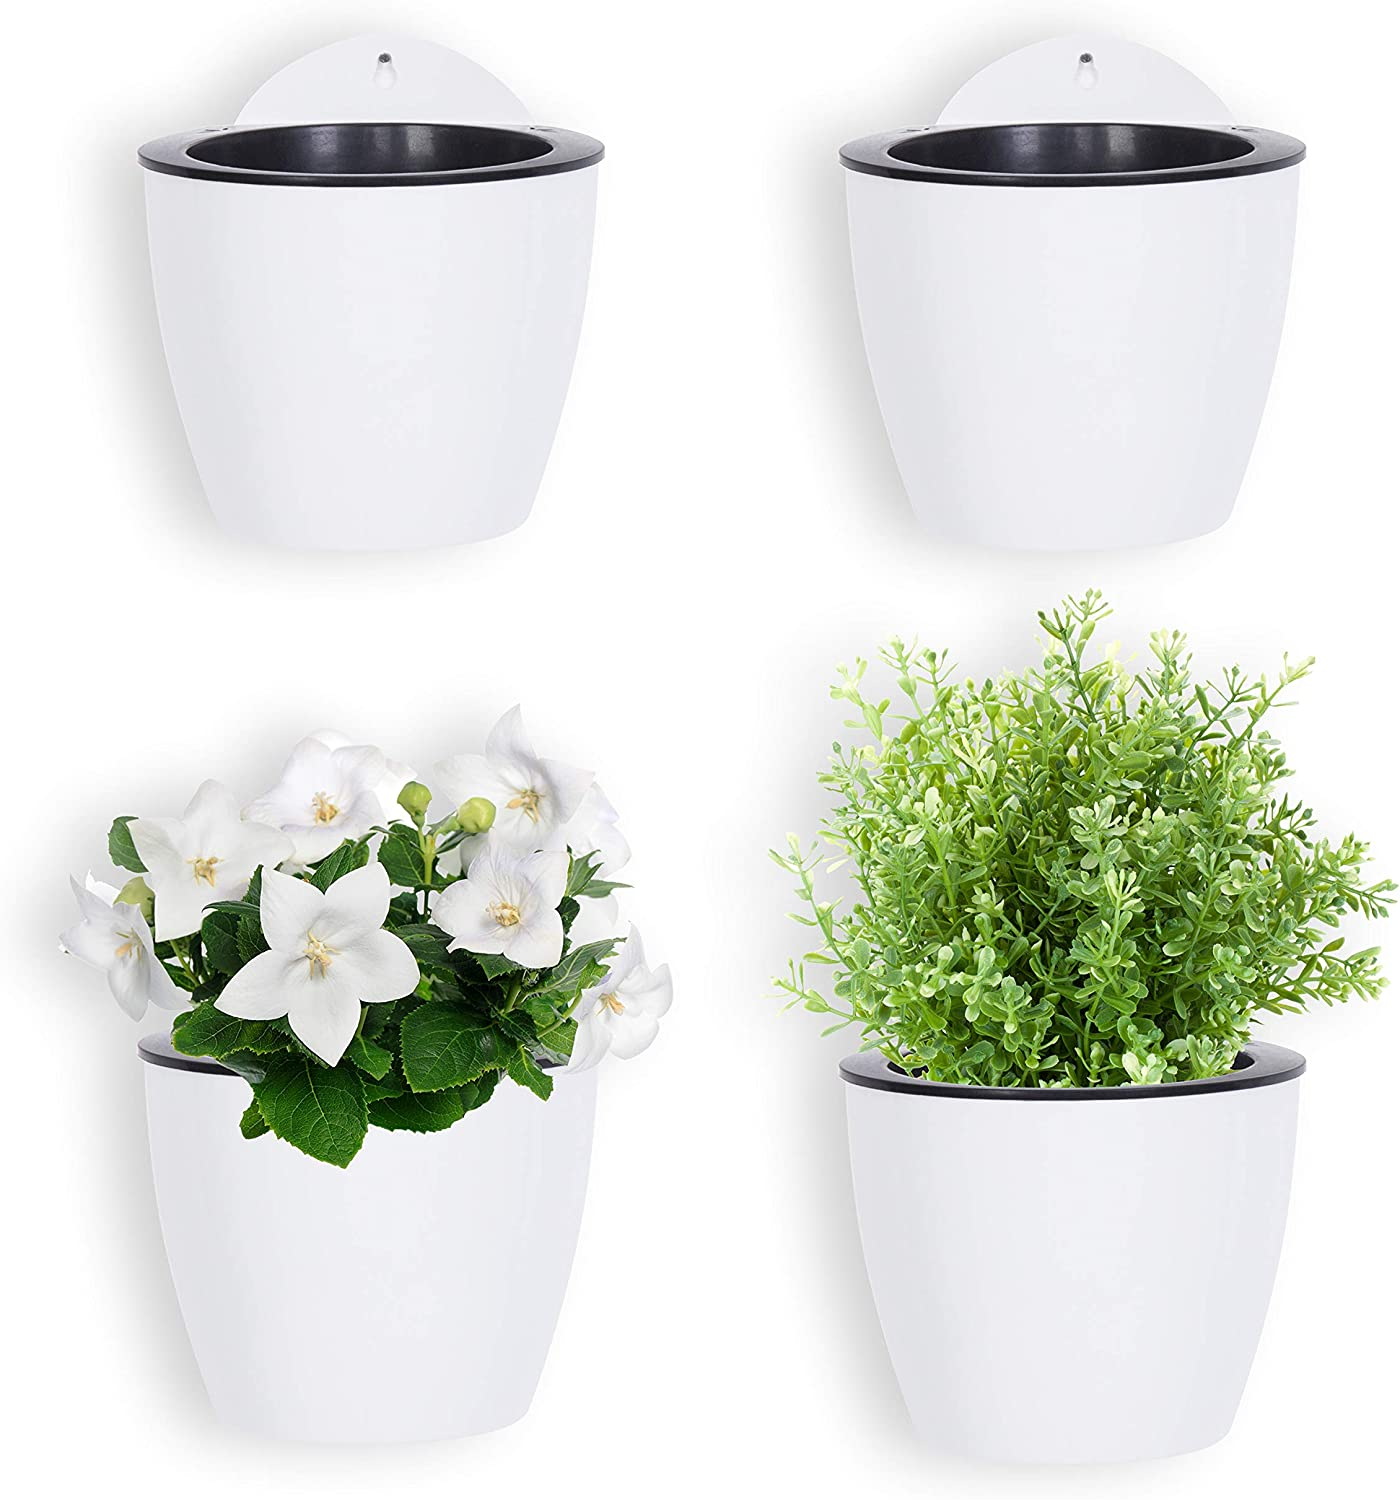 Self Watering Hanging Planters 7 Pack for Plants Flowers Indoor Outdoor Window Wall Large 7 Inch Plant Pots with Hooks White Plastic by ShoppeWatch PL35